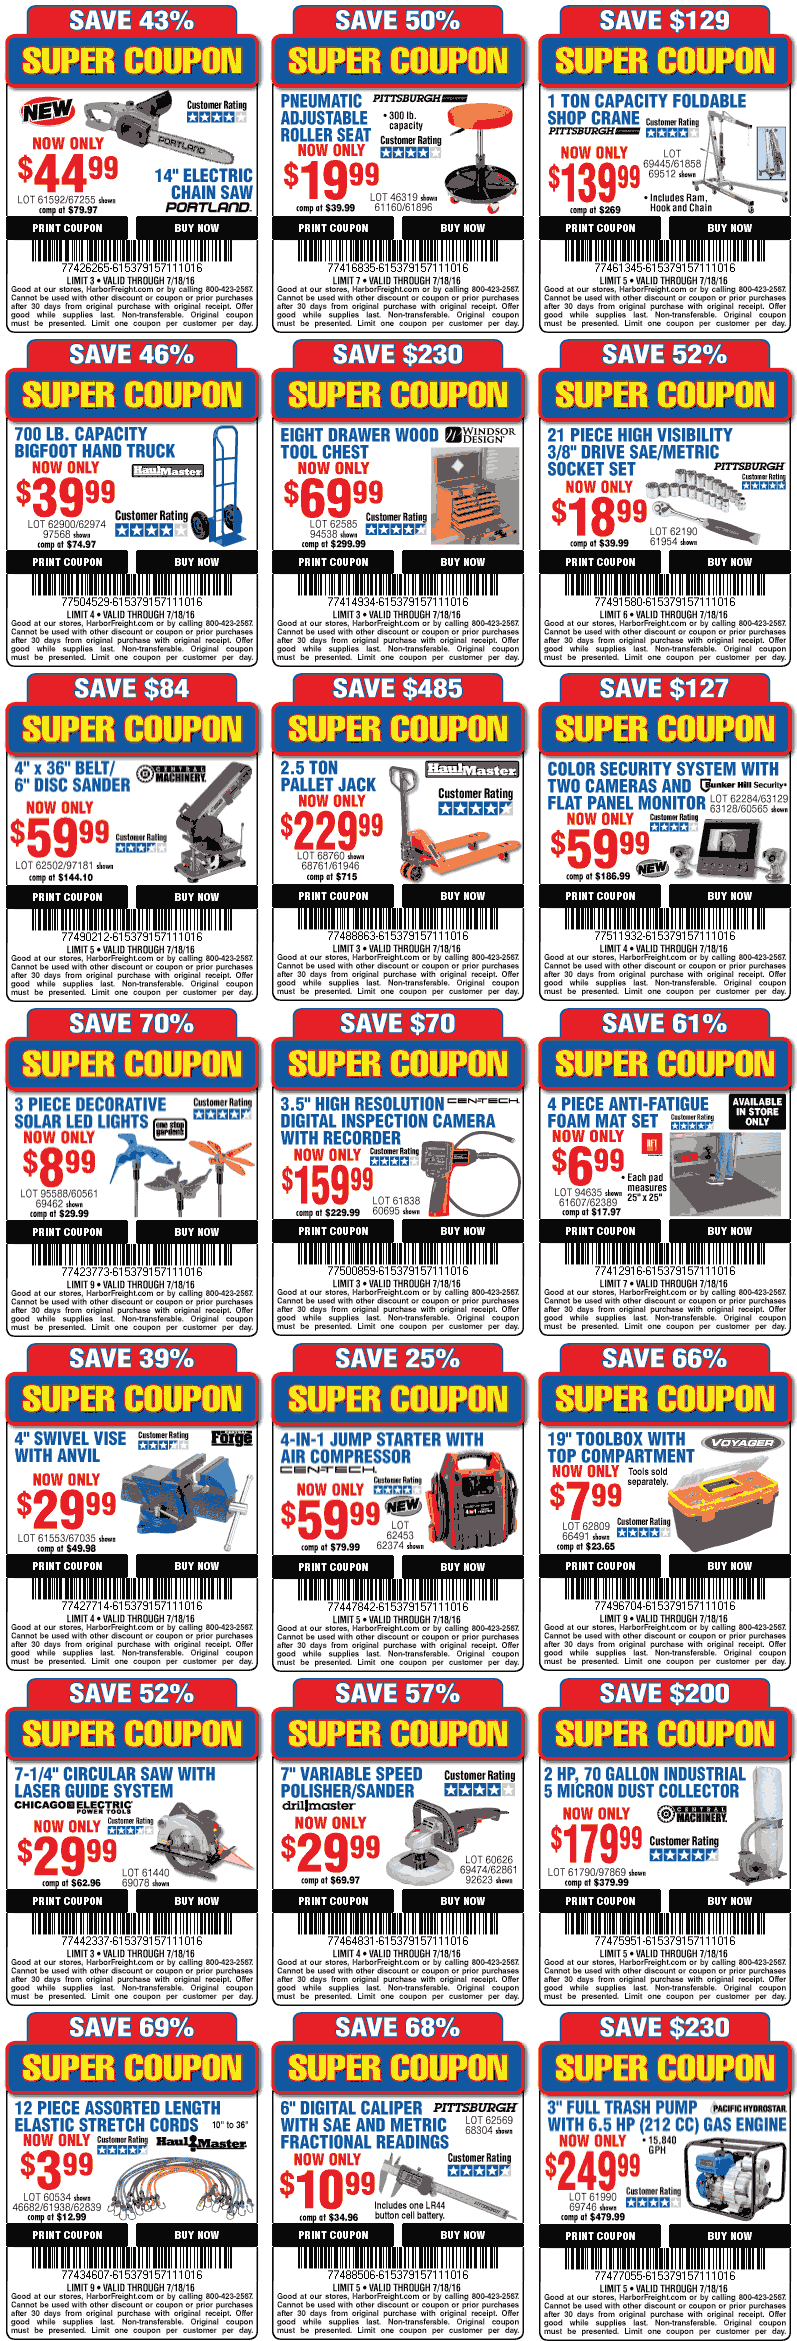 Harbor Freight Tools Coupon February 2017 Various tool discounts at Harbor Freight Tools